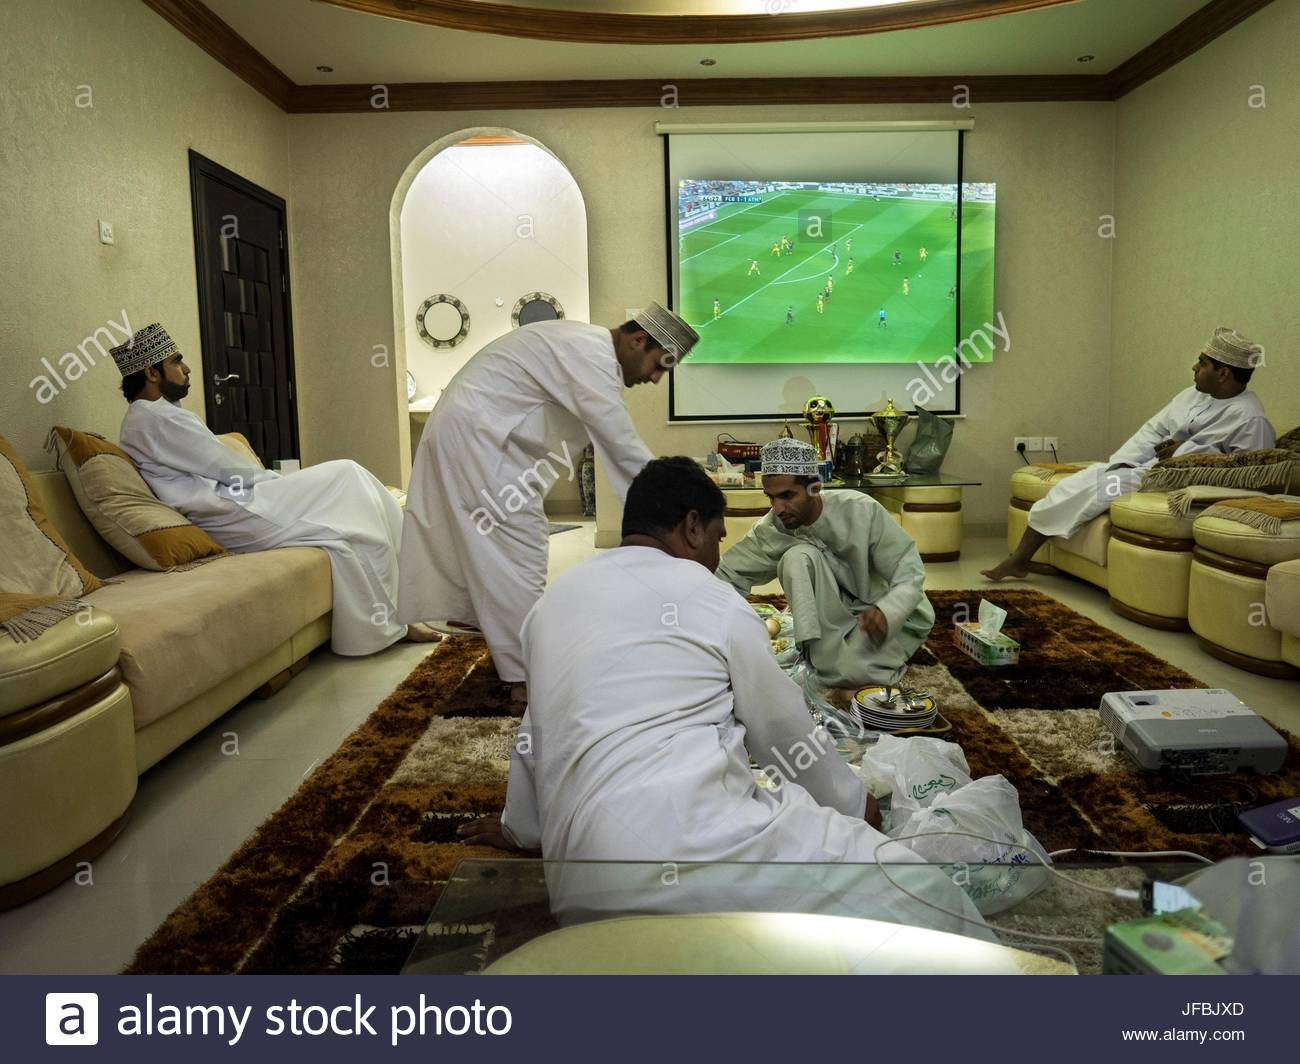 Men eat dinner and watch a soccer match on a wide screen TV. - Stock Image